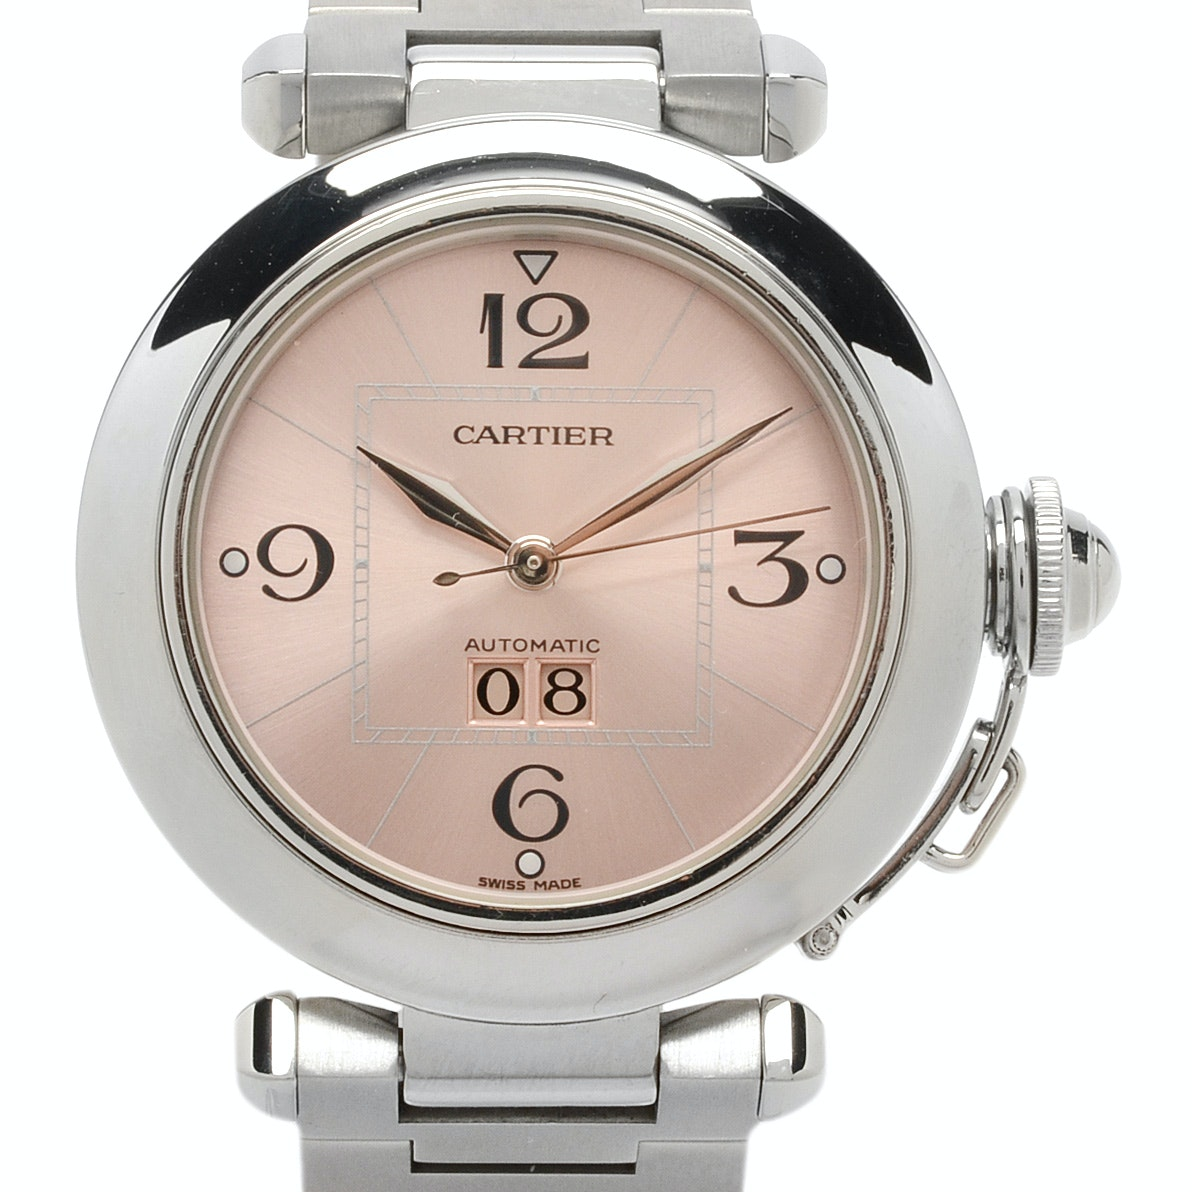 "Cartier ""Pasha C"" Big Date Stainless Steel Automatic Wristwatch"